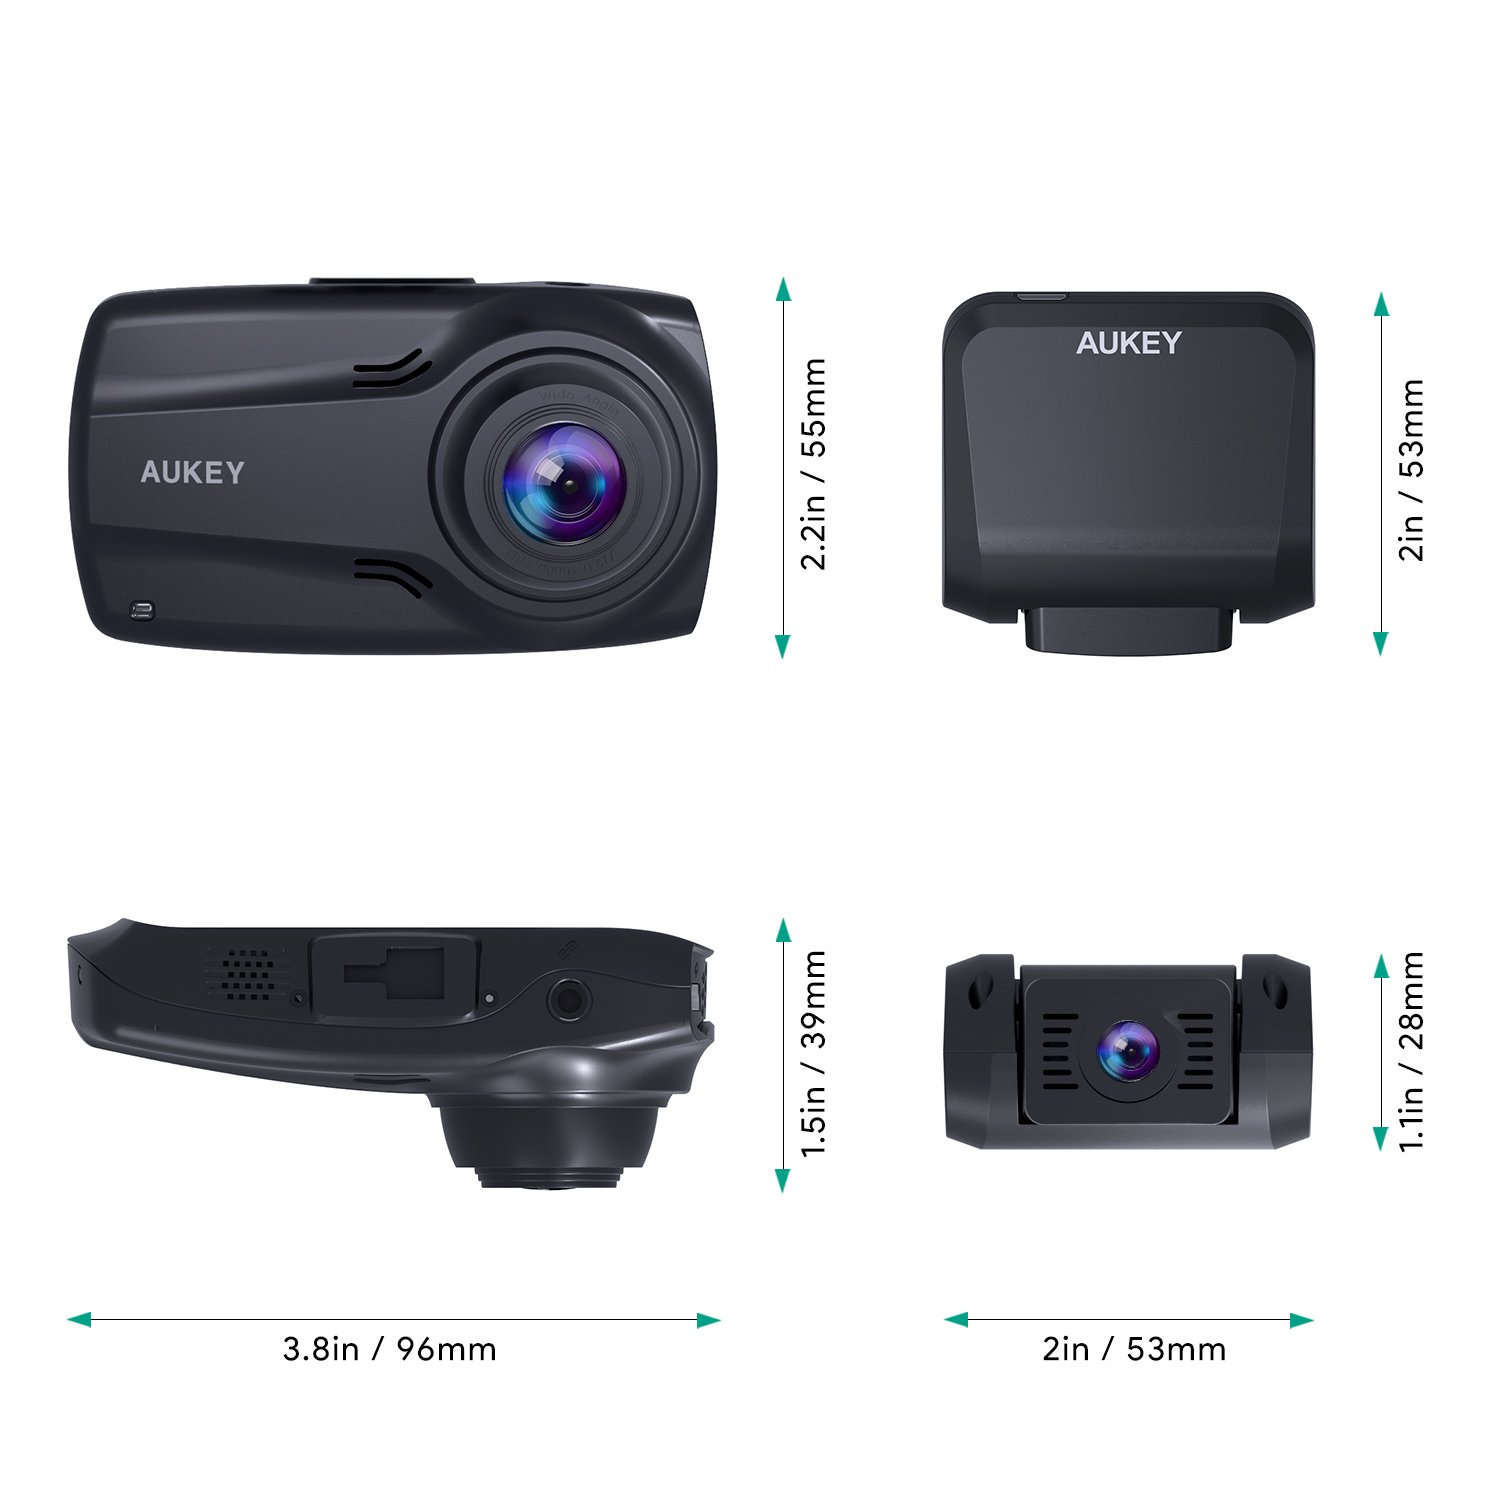 """AUKEY 1080p Dual Dash Cams with 2.7"""" Screen, Full HD Front and Rear Camera, 6-Lane 170° Wide-Angle Lens, G-Sensor, and Dual-Port Car Charger by AUKEY (Image #9)"""